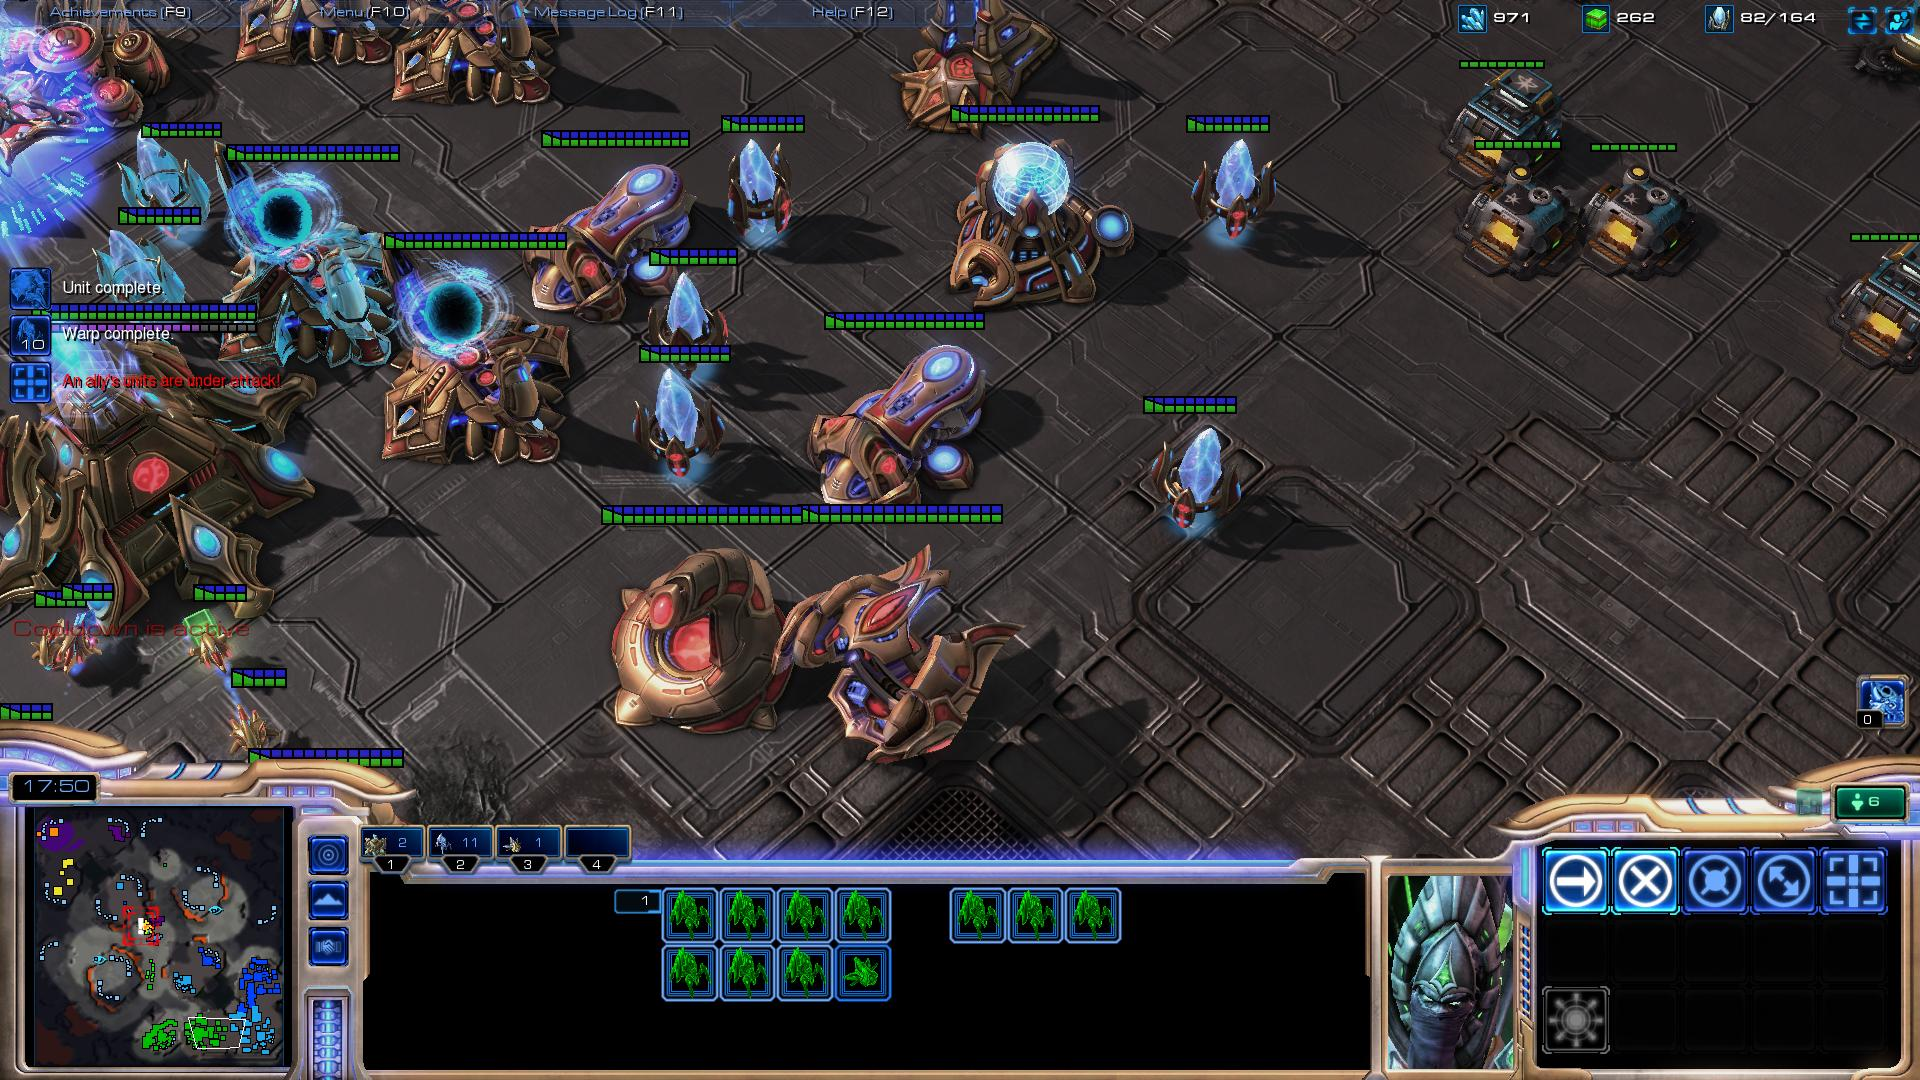 sc2 protoss build sc2 screenshot